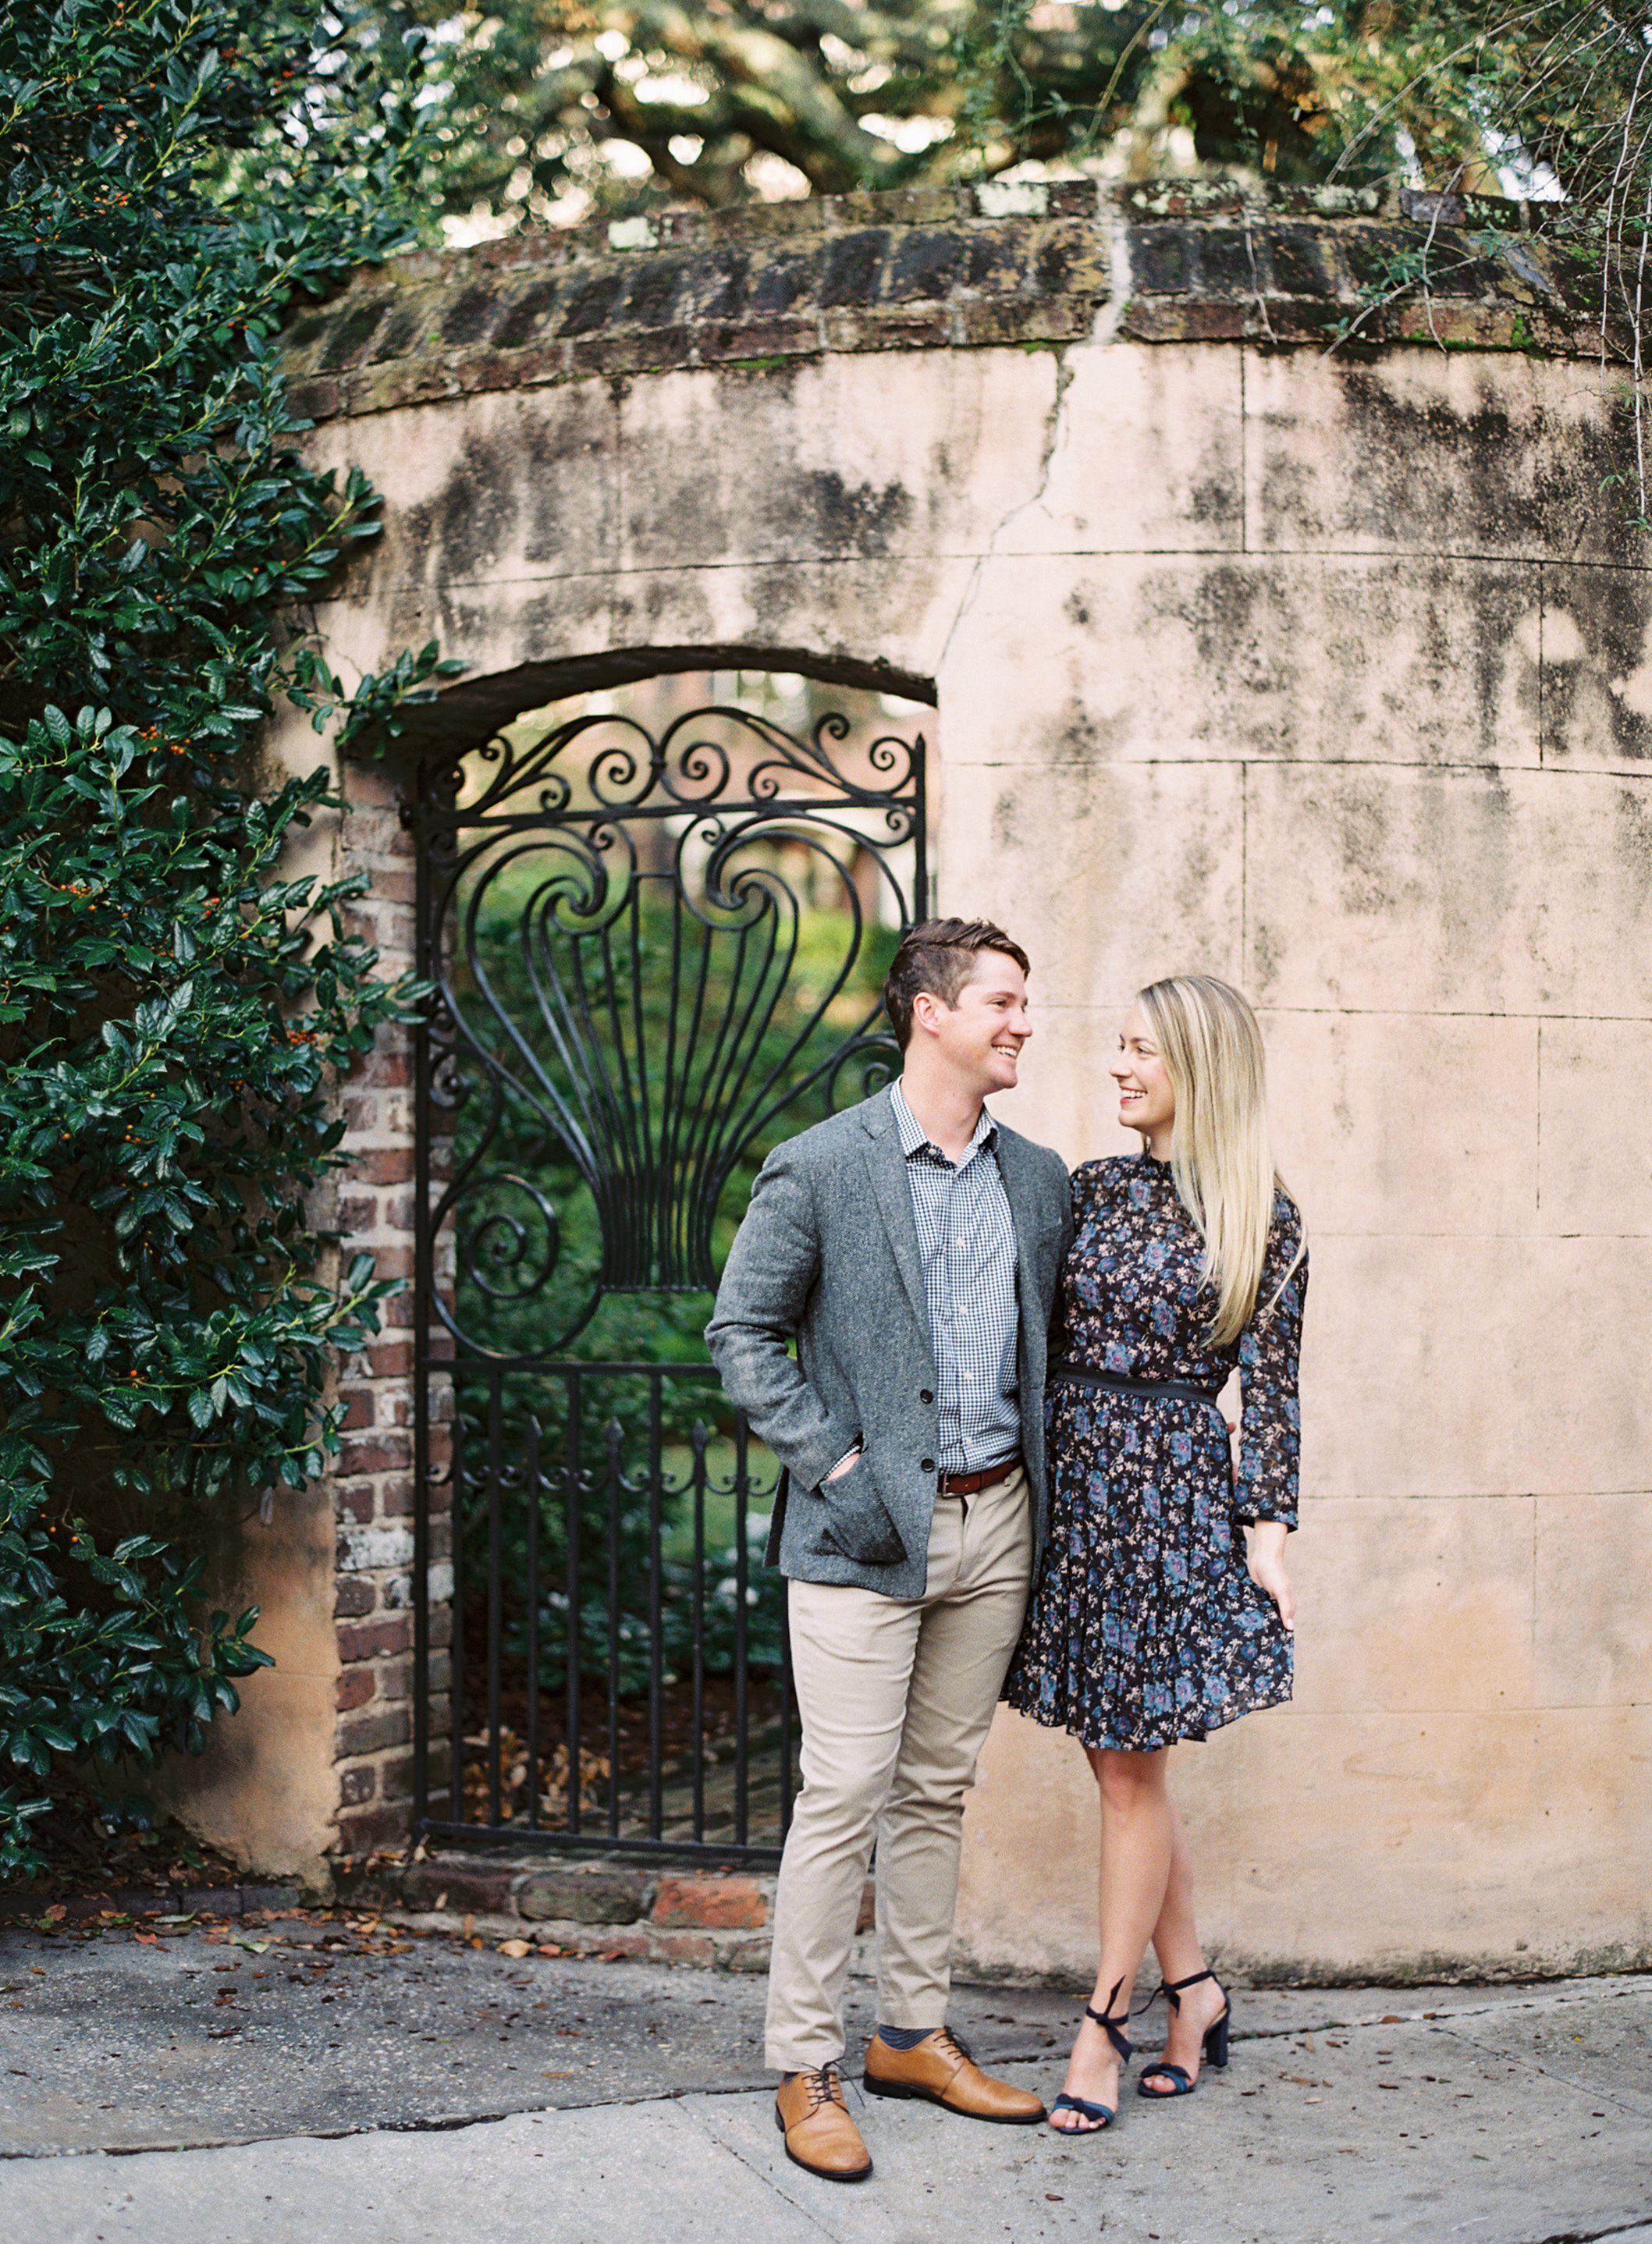 Dressy holiday outfit ideas to shop now + what to wear to a dressy holiday party | Rhyme & Reason